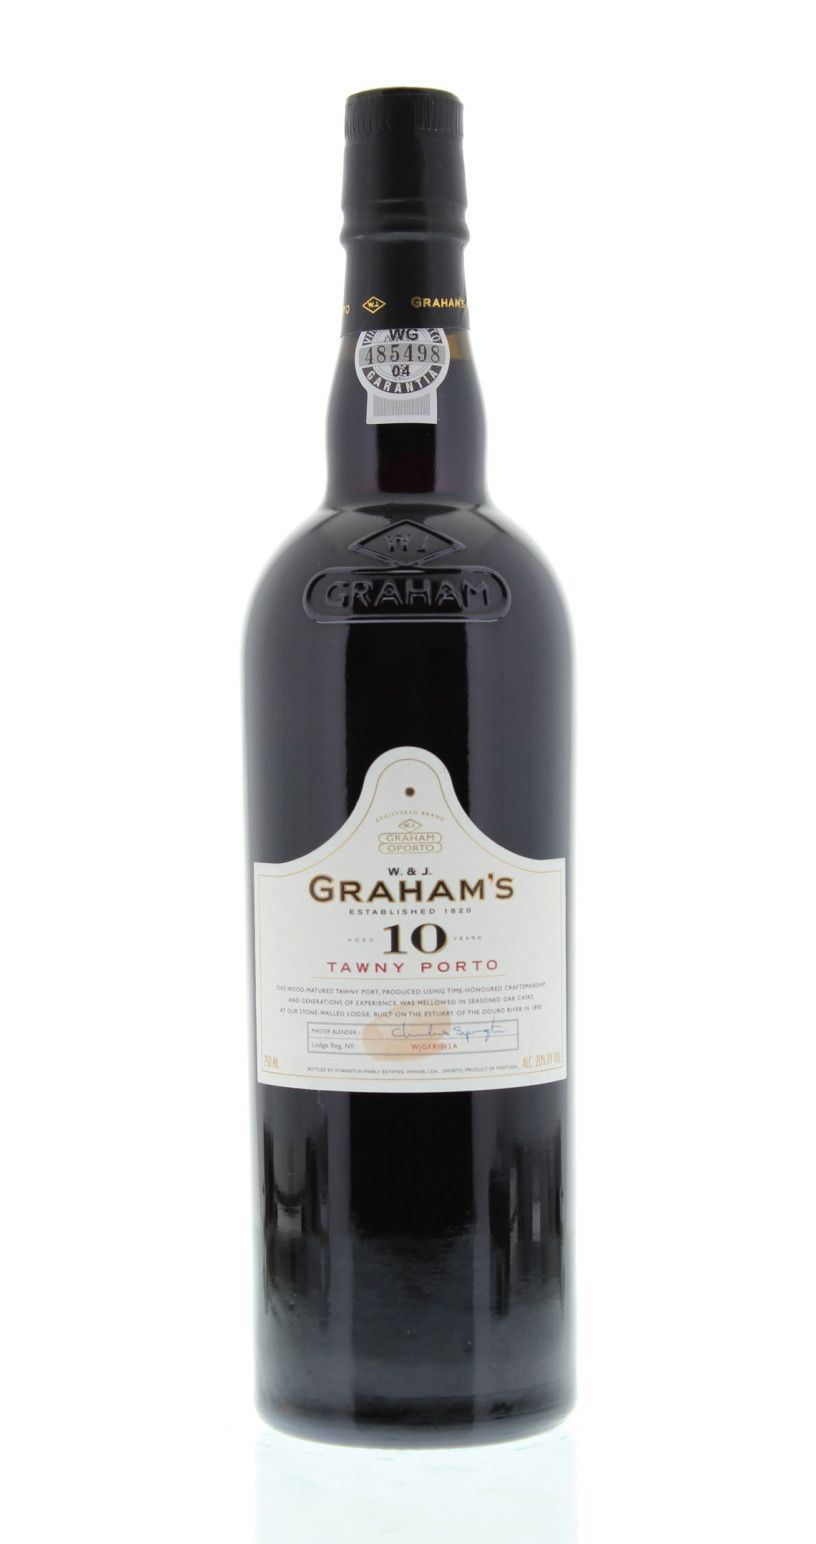 Graham S 10 Year Old Tawny Port Grape Spirit Wine Bottle Desserts In A Glass